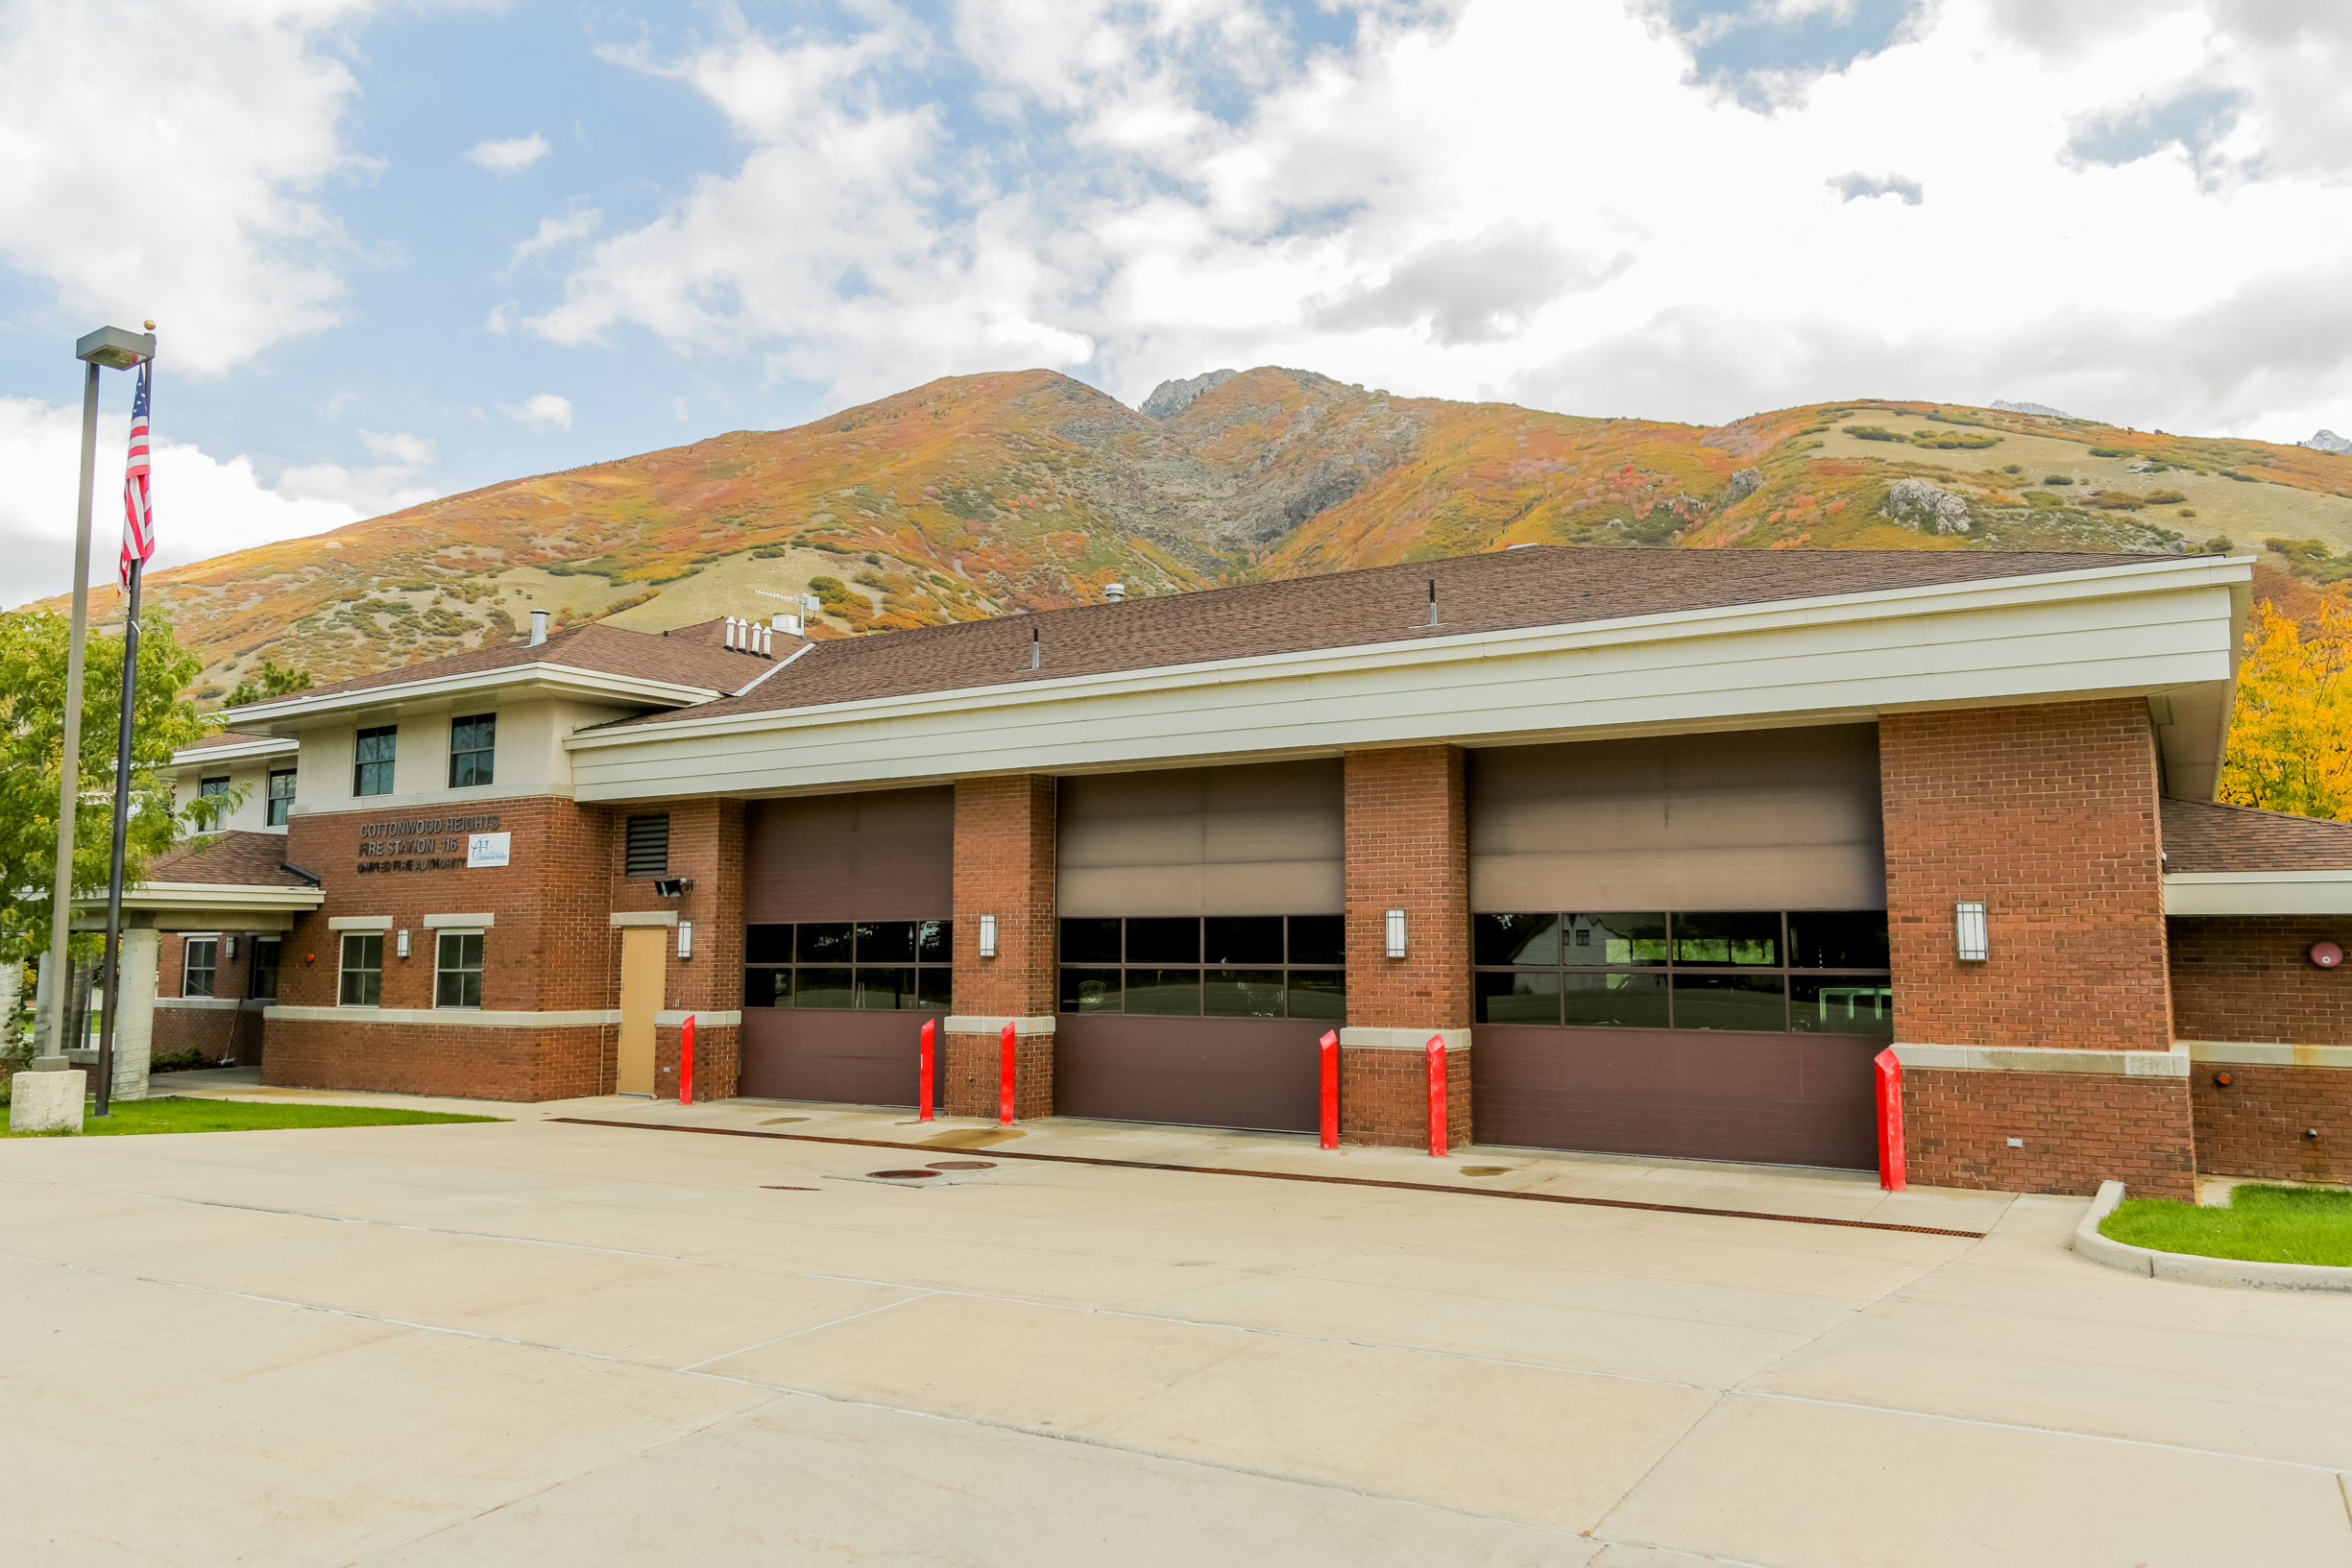 Station 116 8303 South Wasatch Blvd. Cottonwood Heights, UT 84121